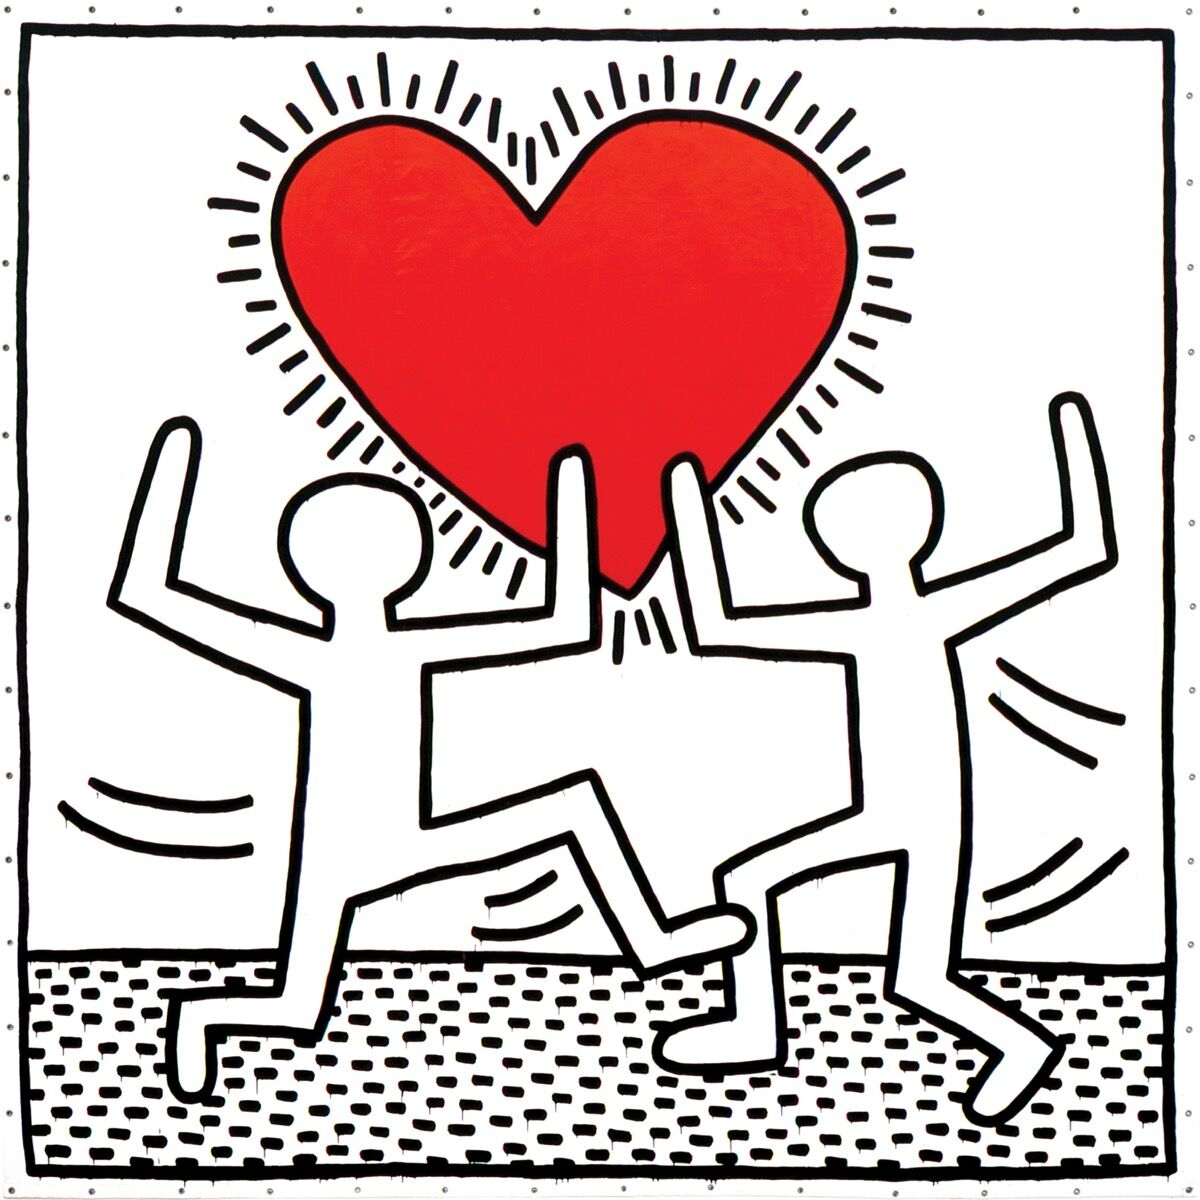 Keith Haring, Untitled, 1982. © Keith Haring Foundation.